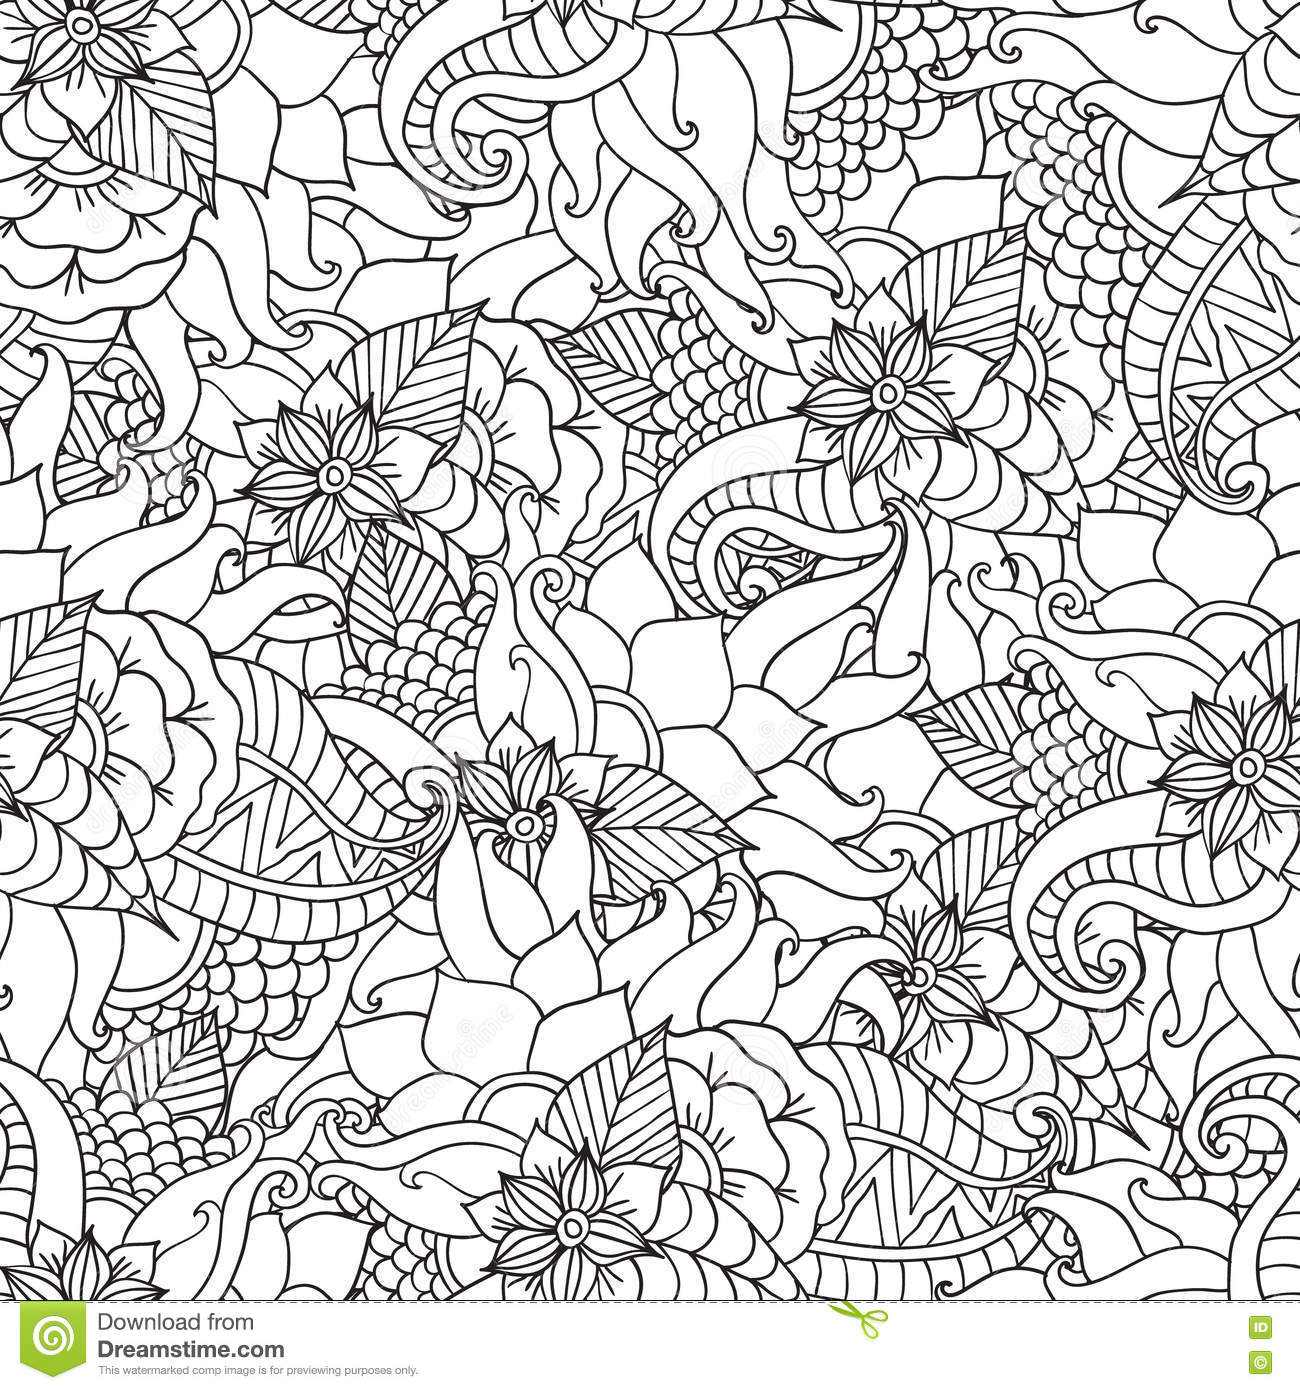 coloring pages nature Coloring Pages For Adults.Decorative Hand Drawn Doodle Nature  coloring pages nature